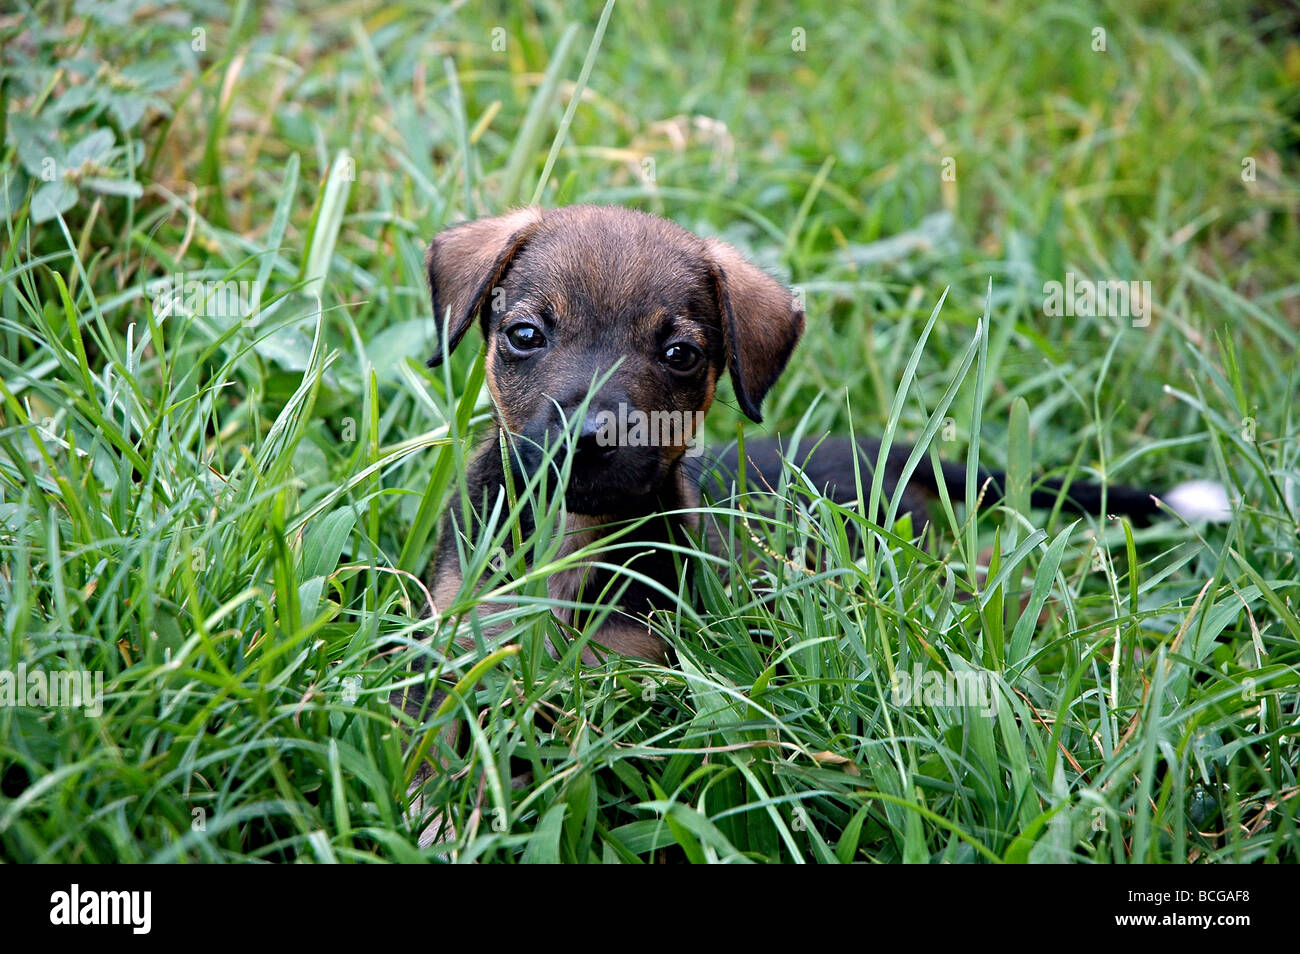 Doggy looking at the camera. - Stock Image